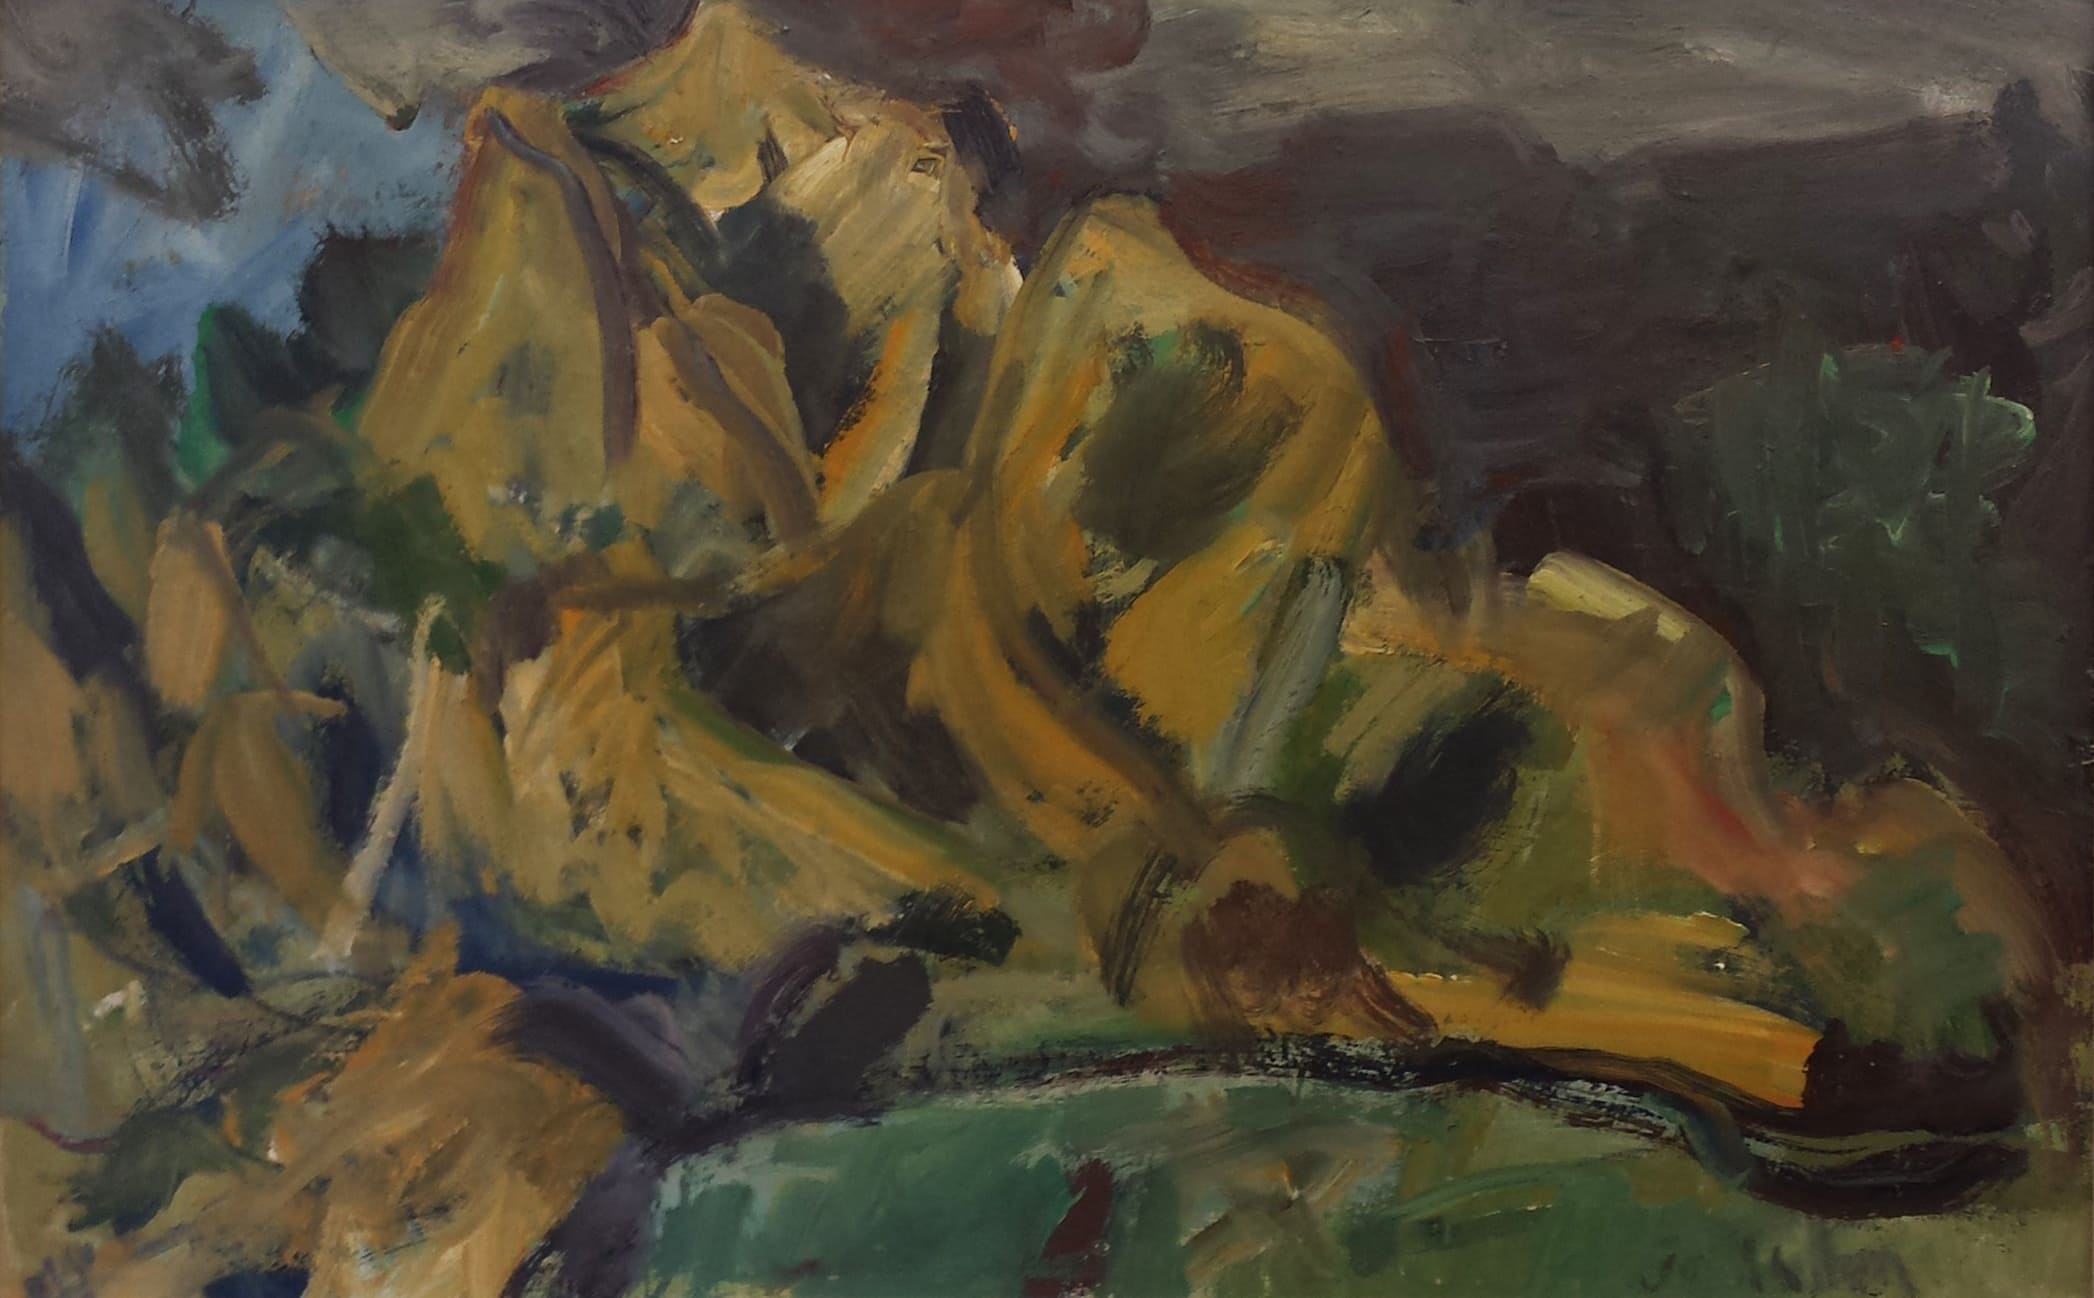 <span class=&#34;link fancybox-details-link&#34;><a href=&#34;/exhibitions/57/works/artworks5065/&#34;>View Detail Page</a></span><div class=&#34;signed_and_dated&#34;>Signed</div> <div class=&#34;medium&#34;>Oil on board</div> <div class=&#34;dimensions&#34;>22 x 35 x 28 in<br />56 x 89 x 71 cm</div>